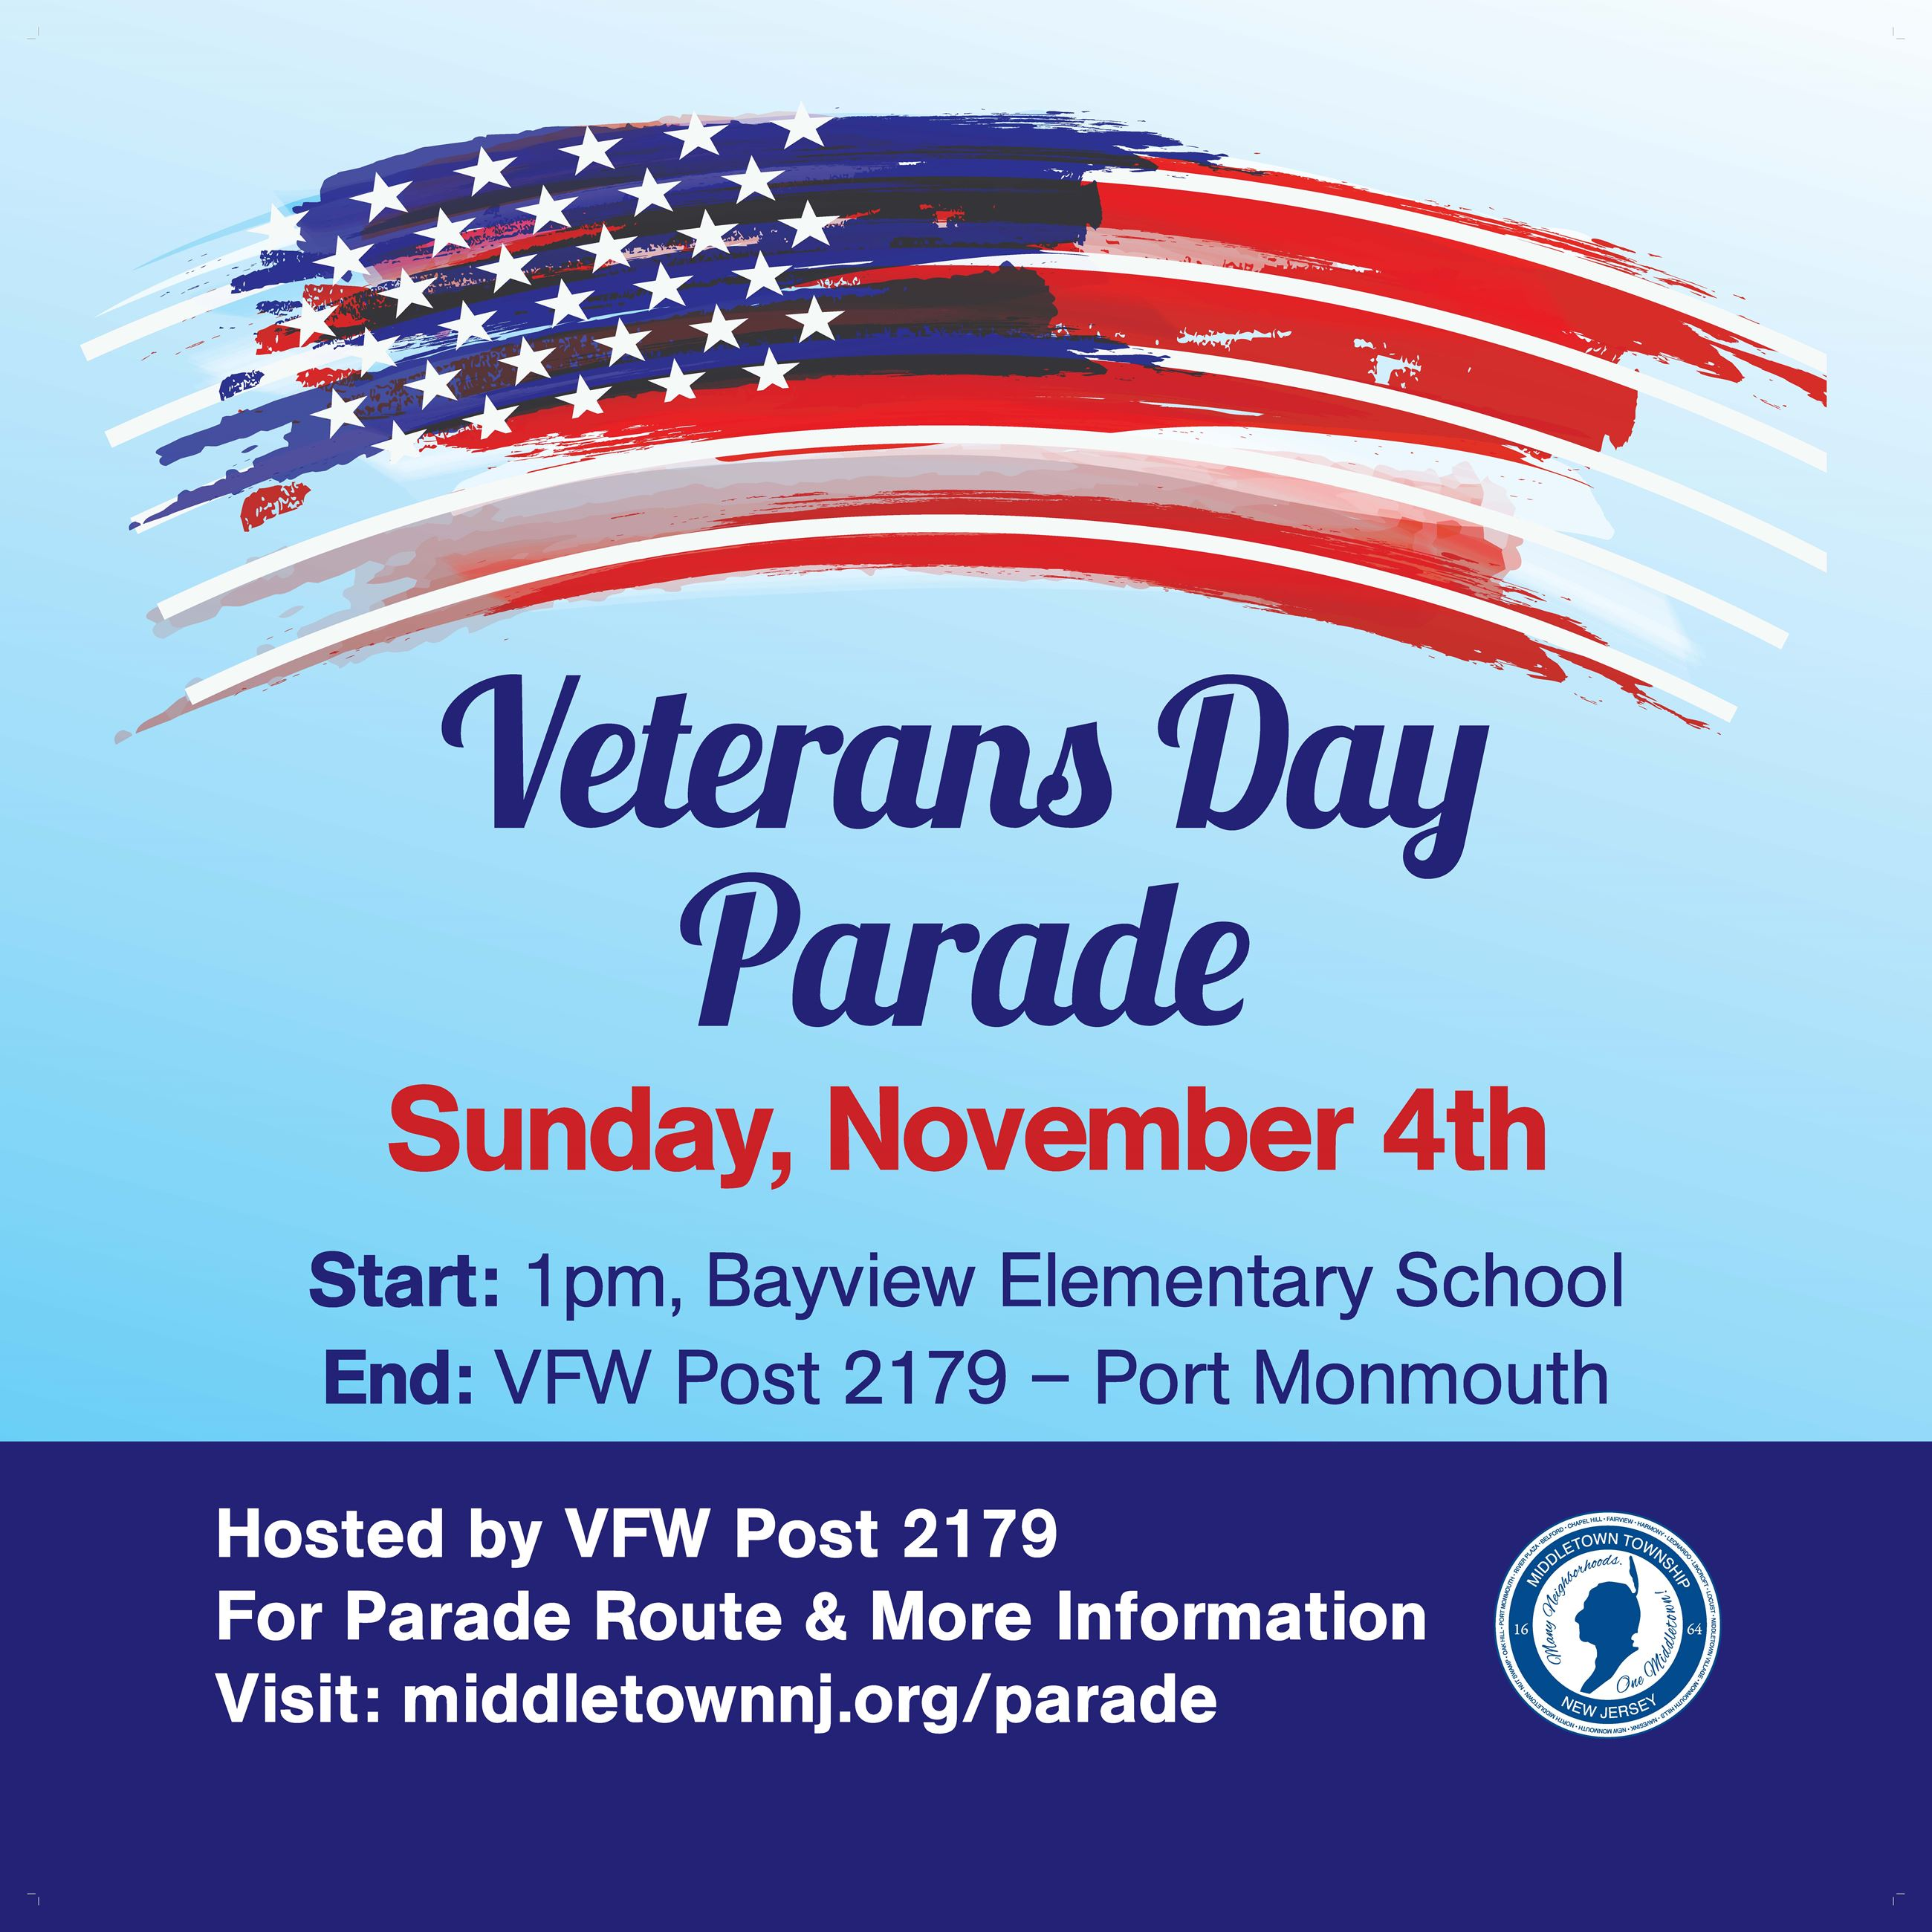 Veterans Day Parade - Full